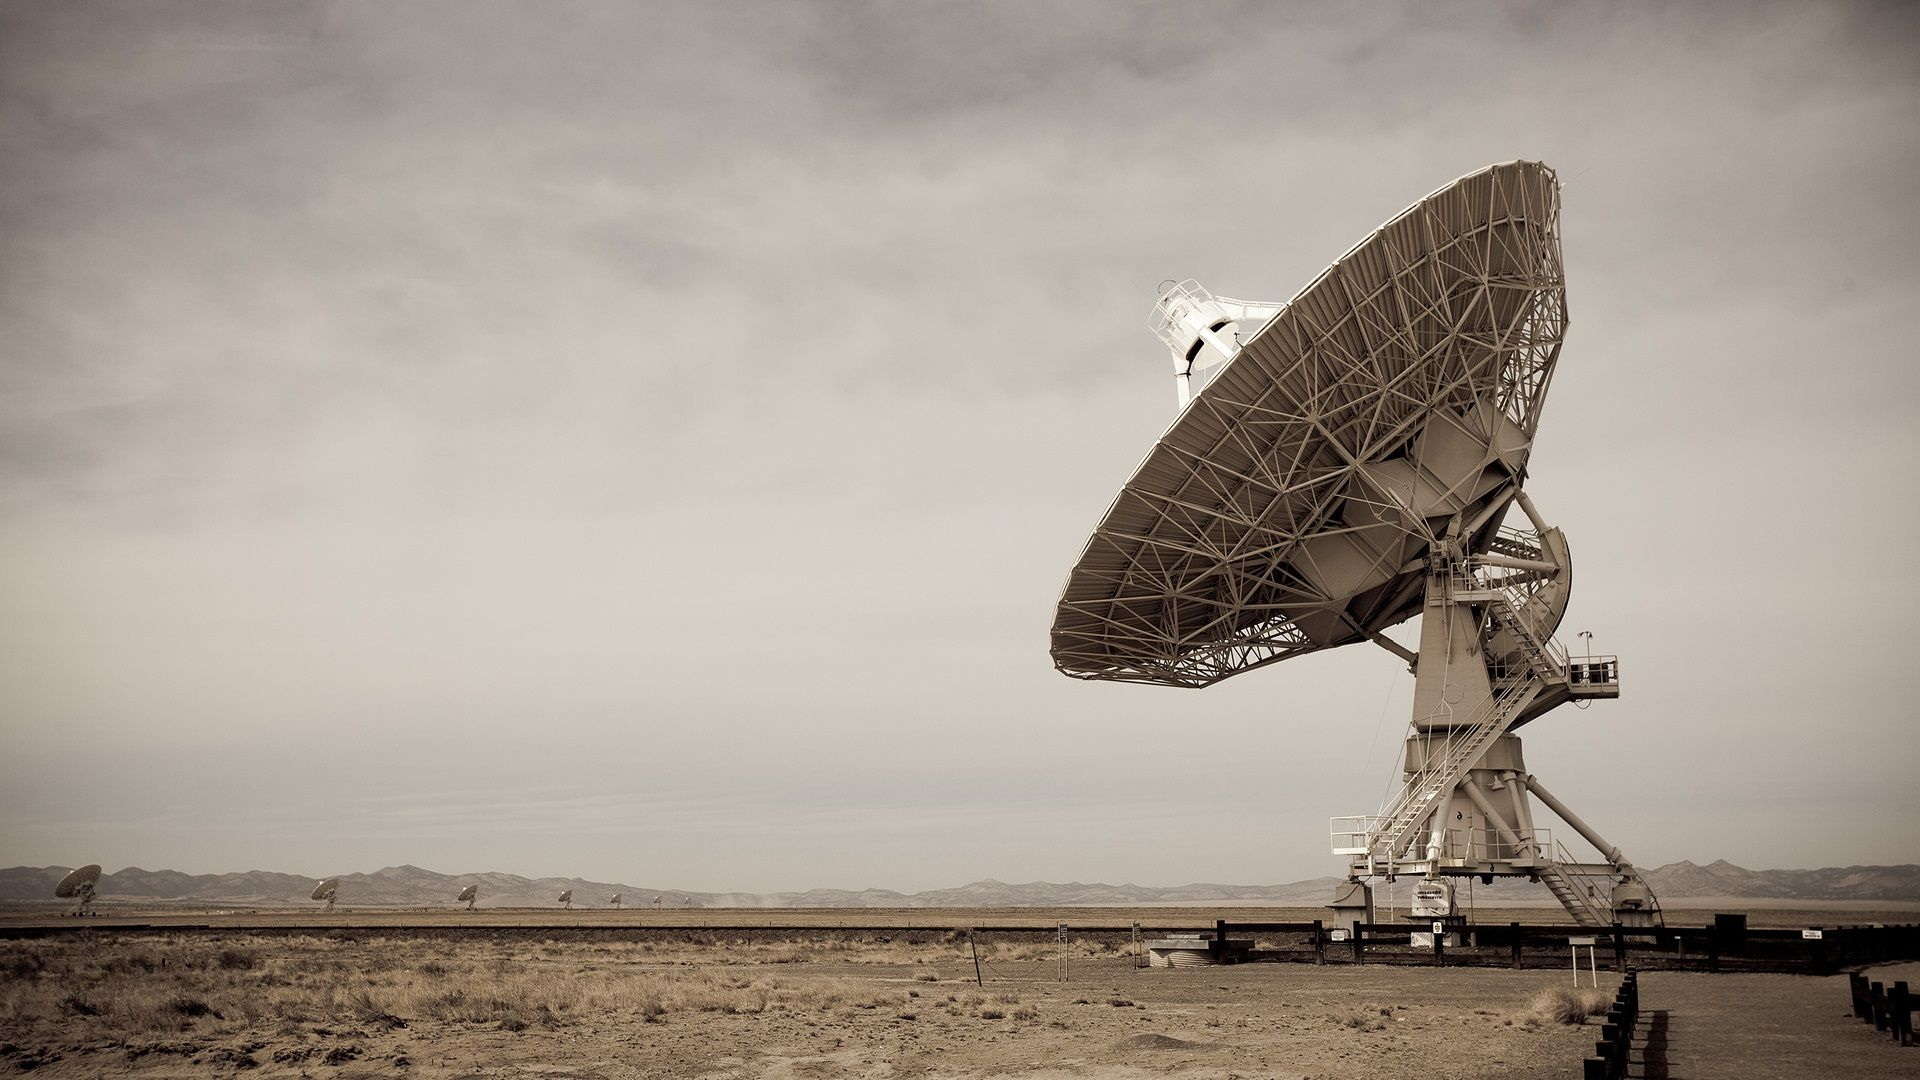 Radio Telescope HD Wallpaper | 1920x1080 | ID:32407